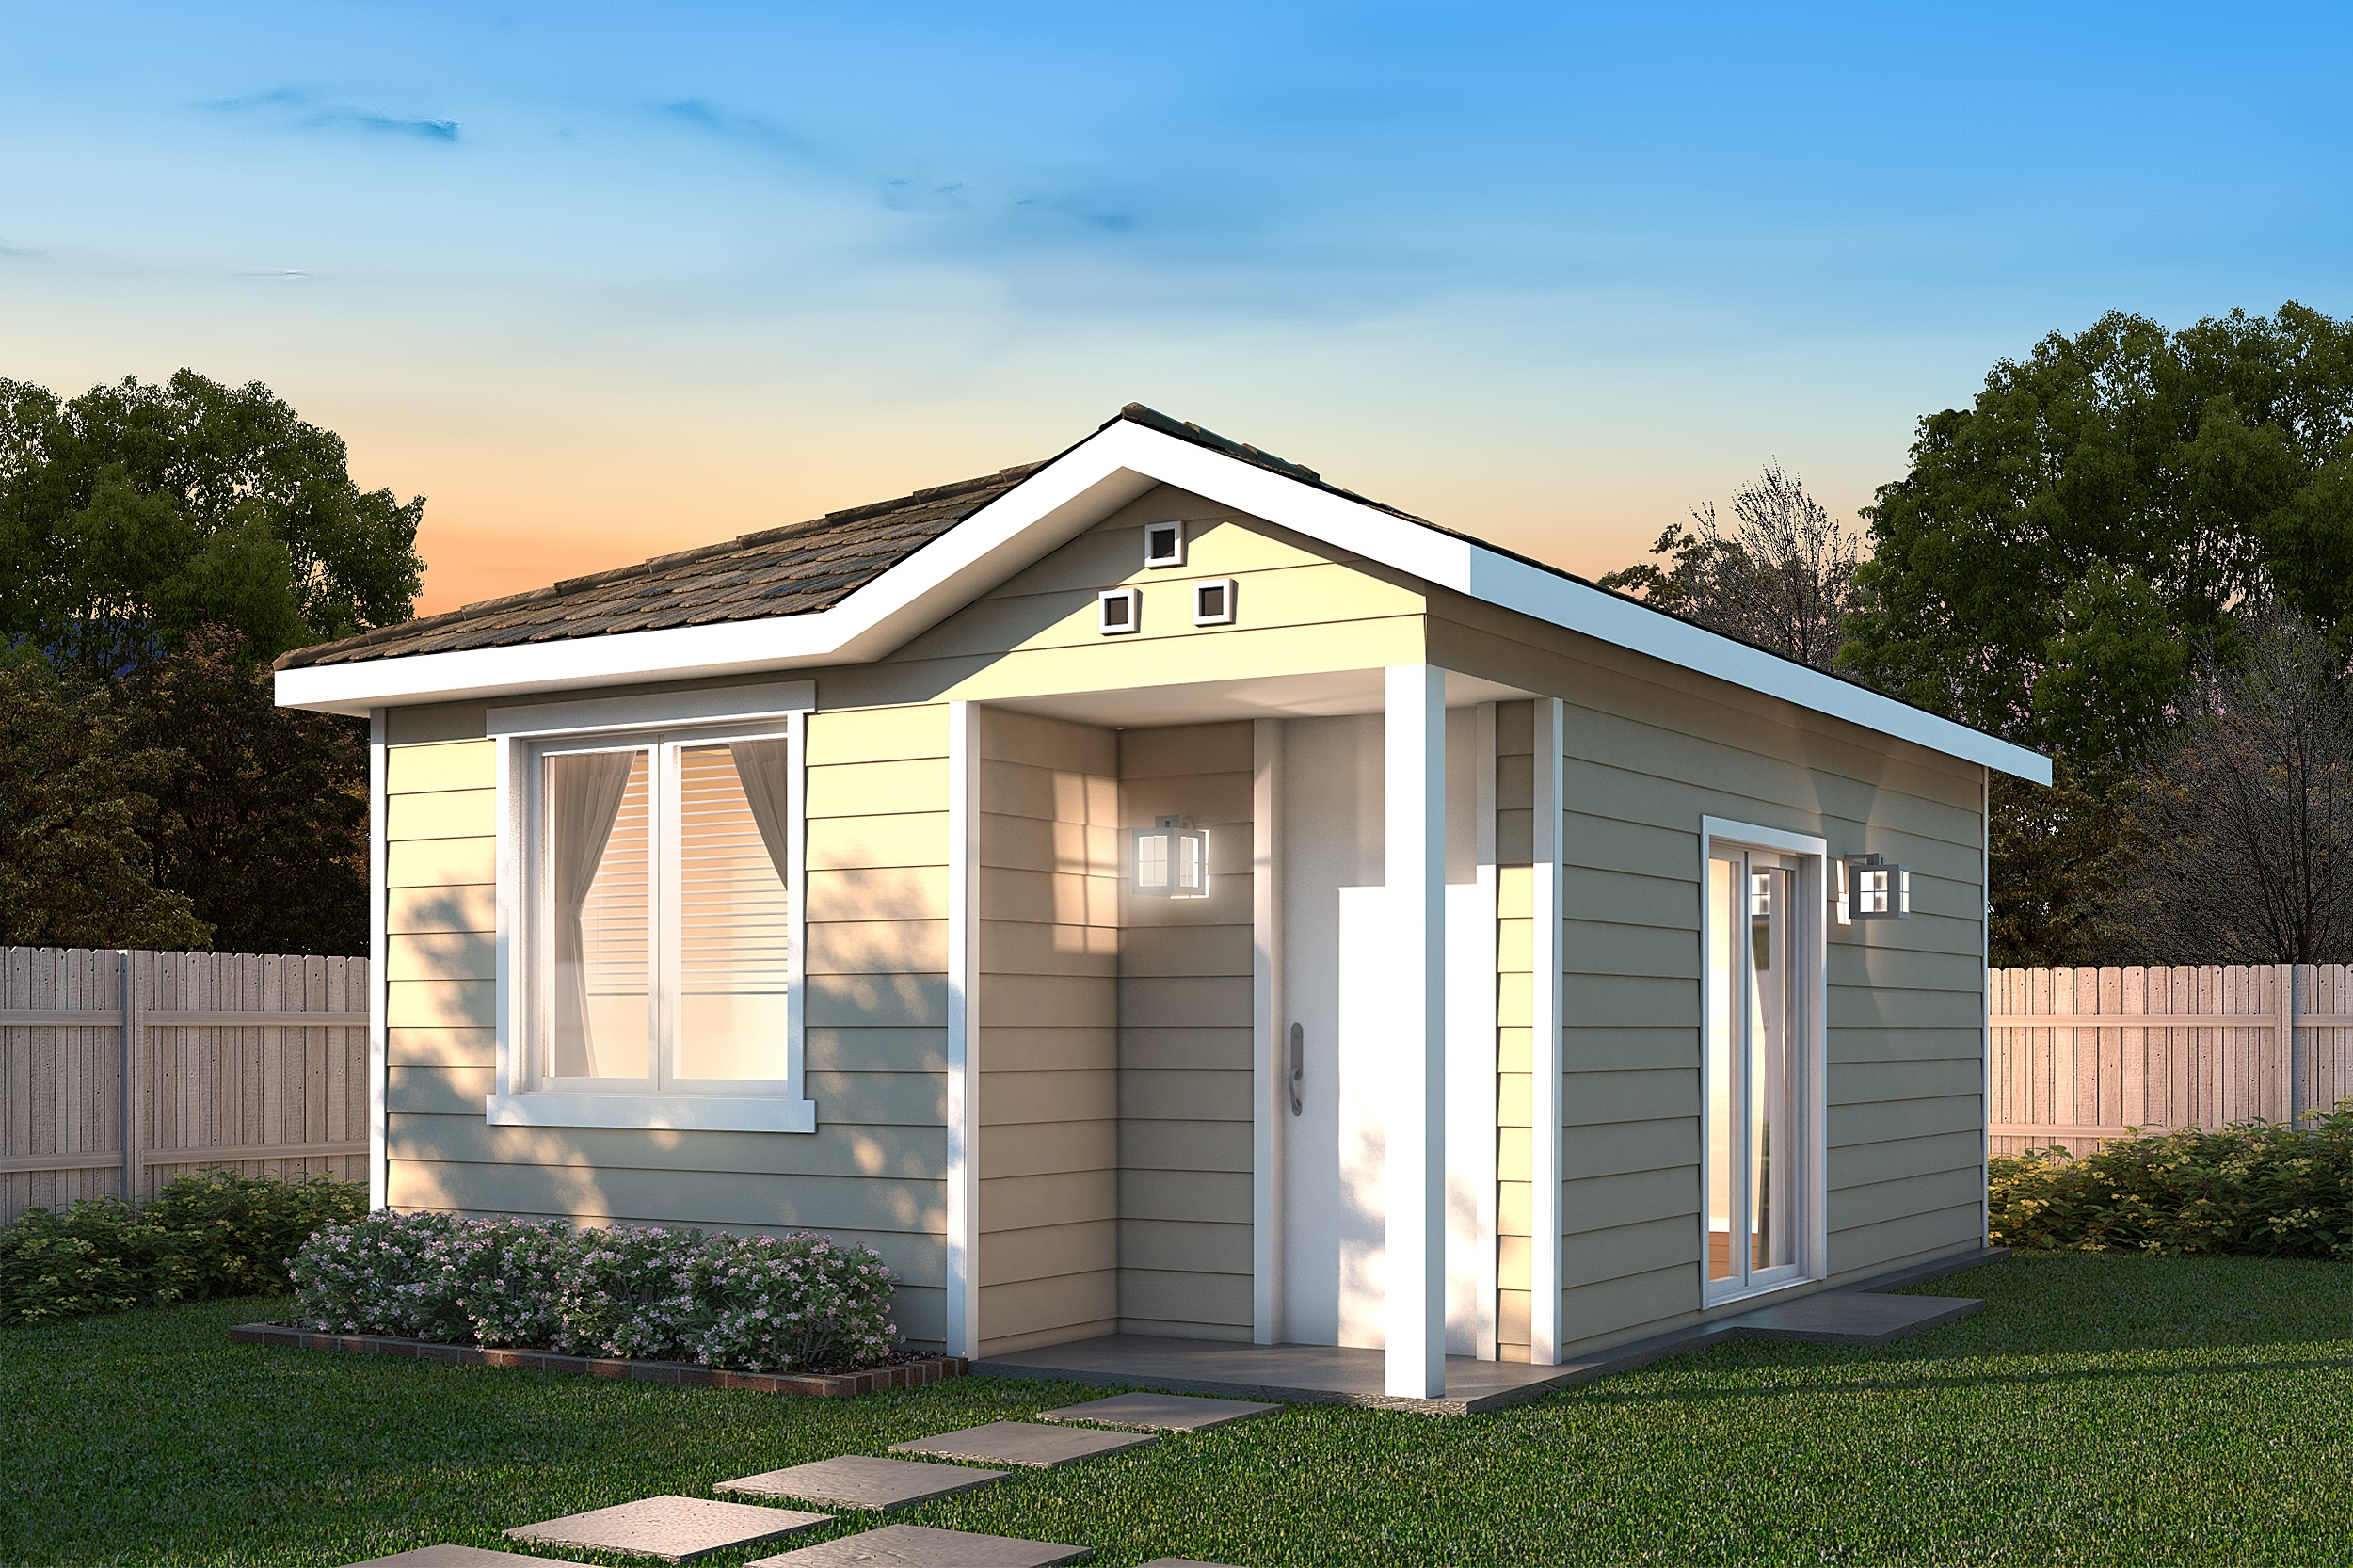 G j gardner homes debuts 10 new granny flat designs - Home design with attached granny flat ...